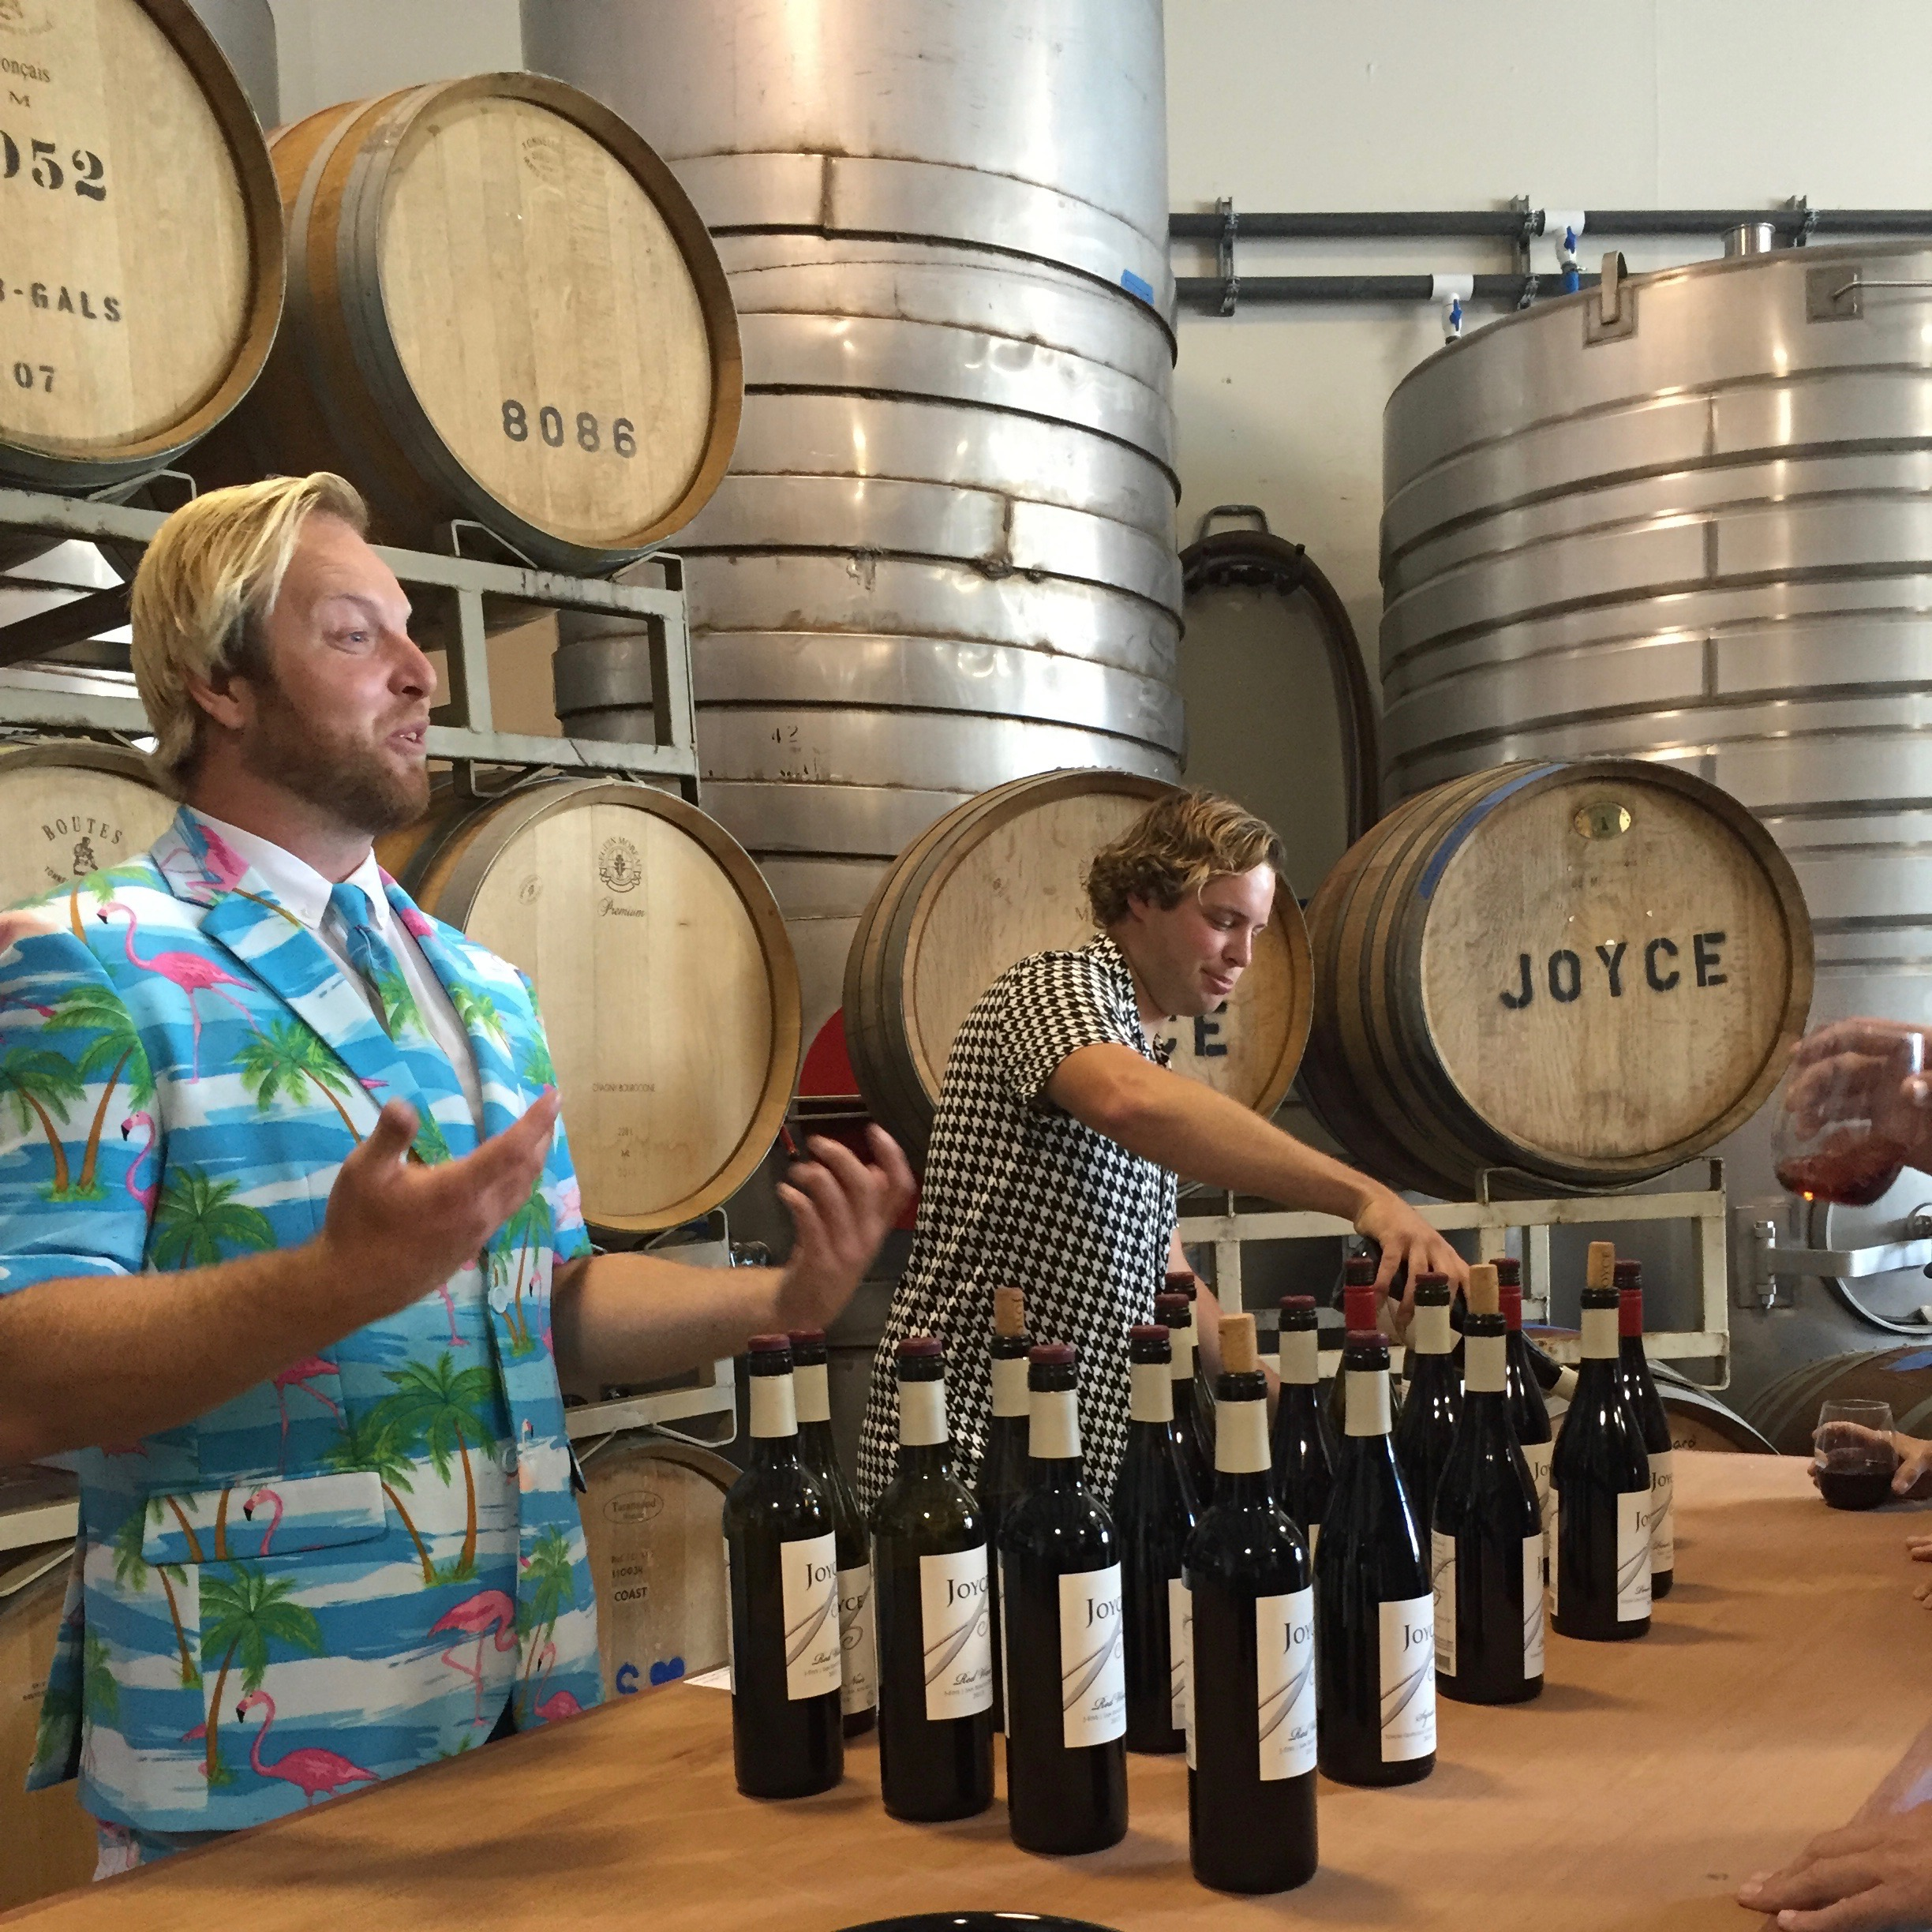 Brothers Todd (left) and Nick (Right [Ivy's wonderful boyfriend]) pouring a selection of red wines offered at Joyce.